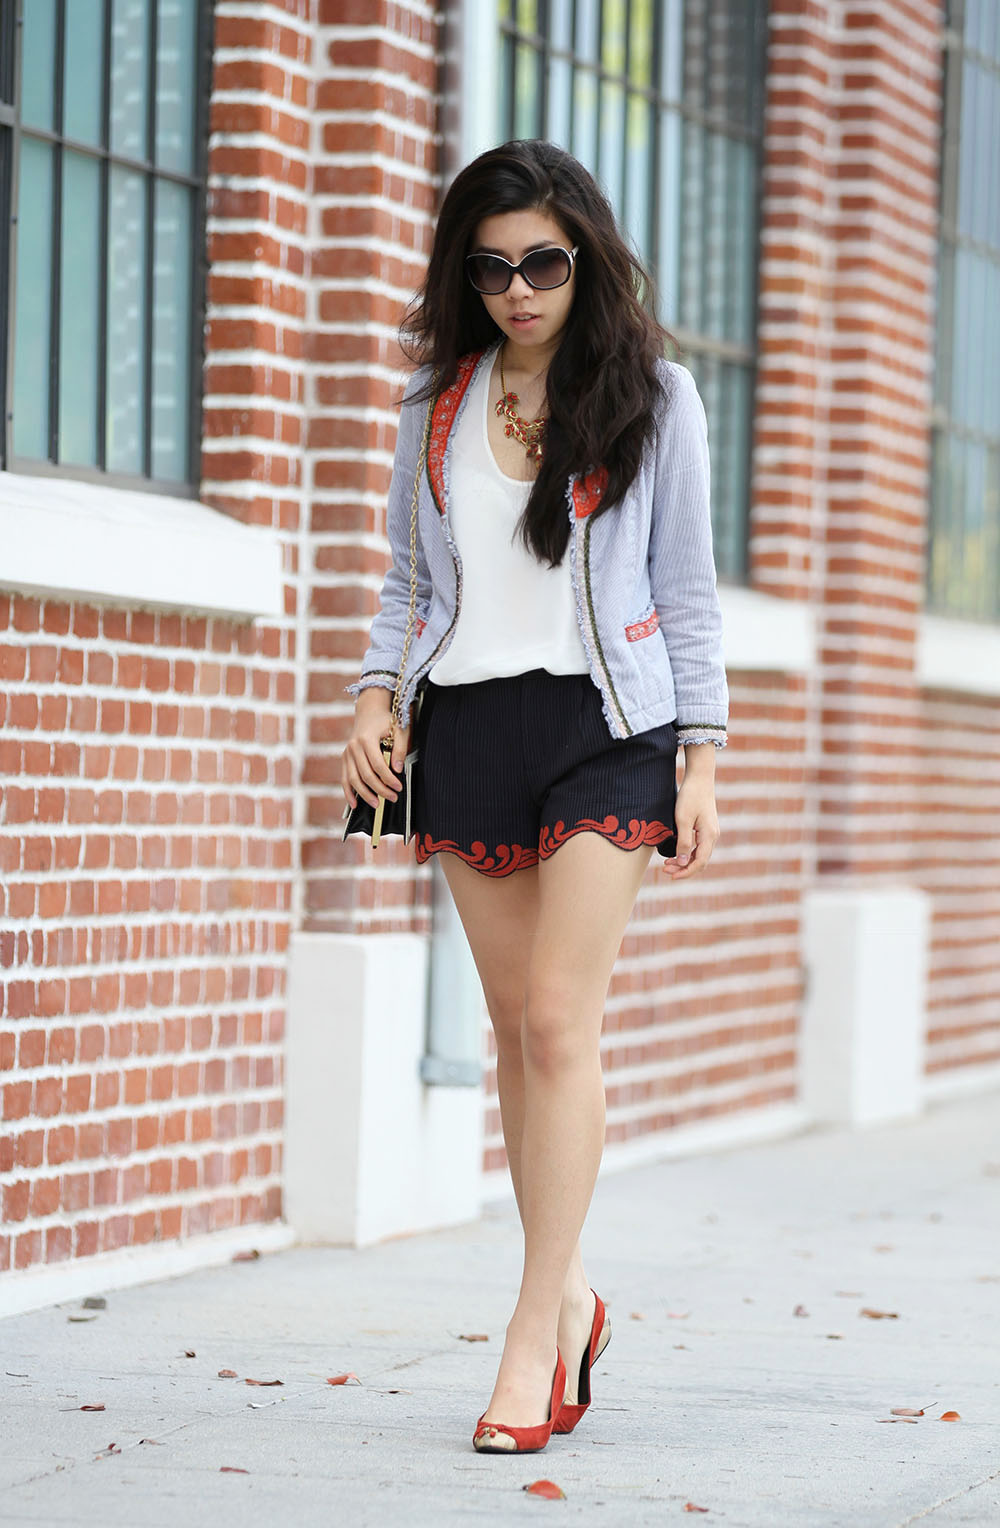 Free People Beaded Jacket_Scallop Shorts_Classy Elegance_Adrienne Nguyen_INvictus